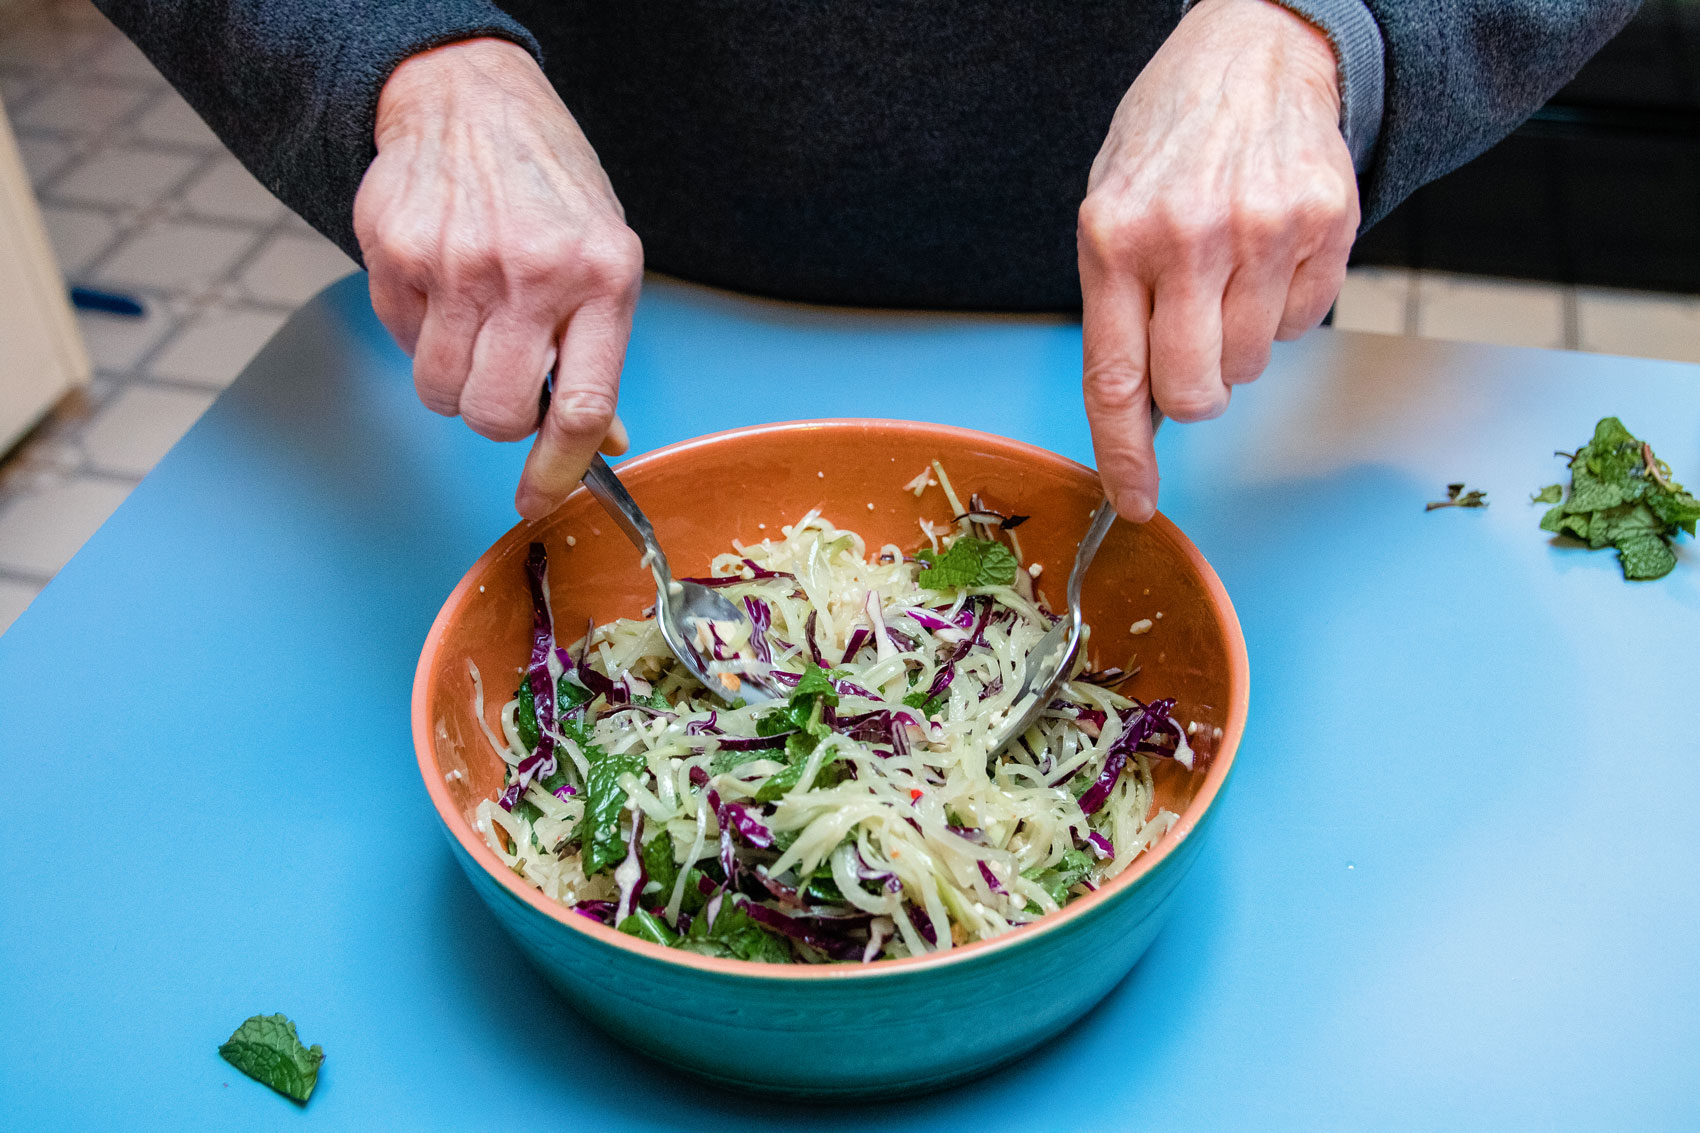 A person mixing together Spicy Green Papaya Slaw from Myers + Chang.